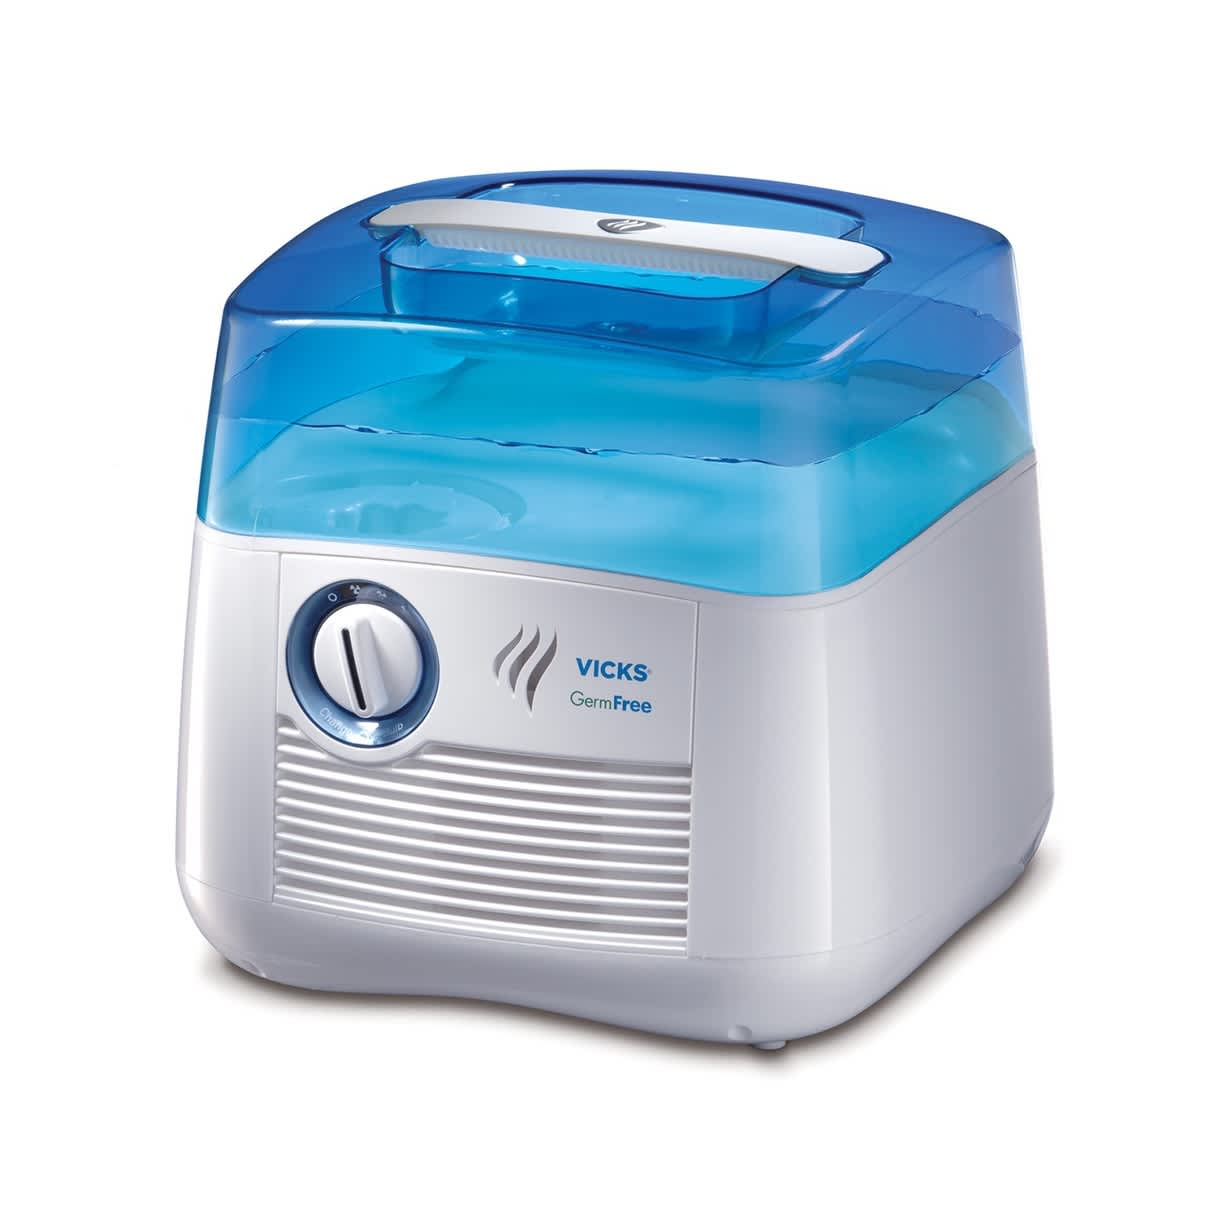 v3900-can-vicks-r-germ-free-cool-moisture-humidifier